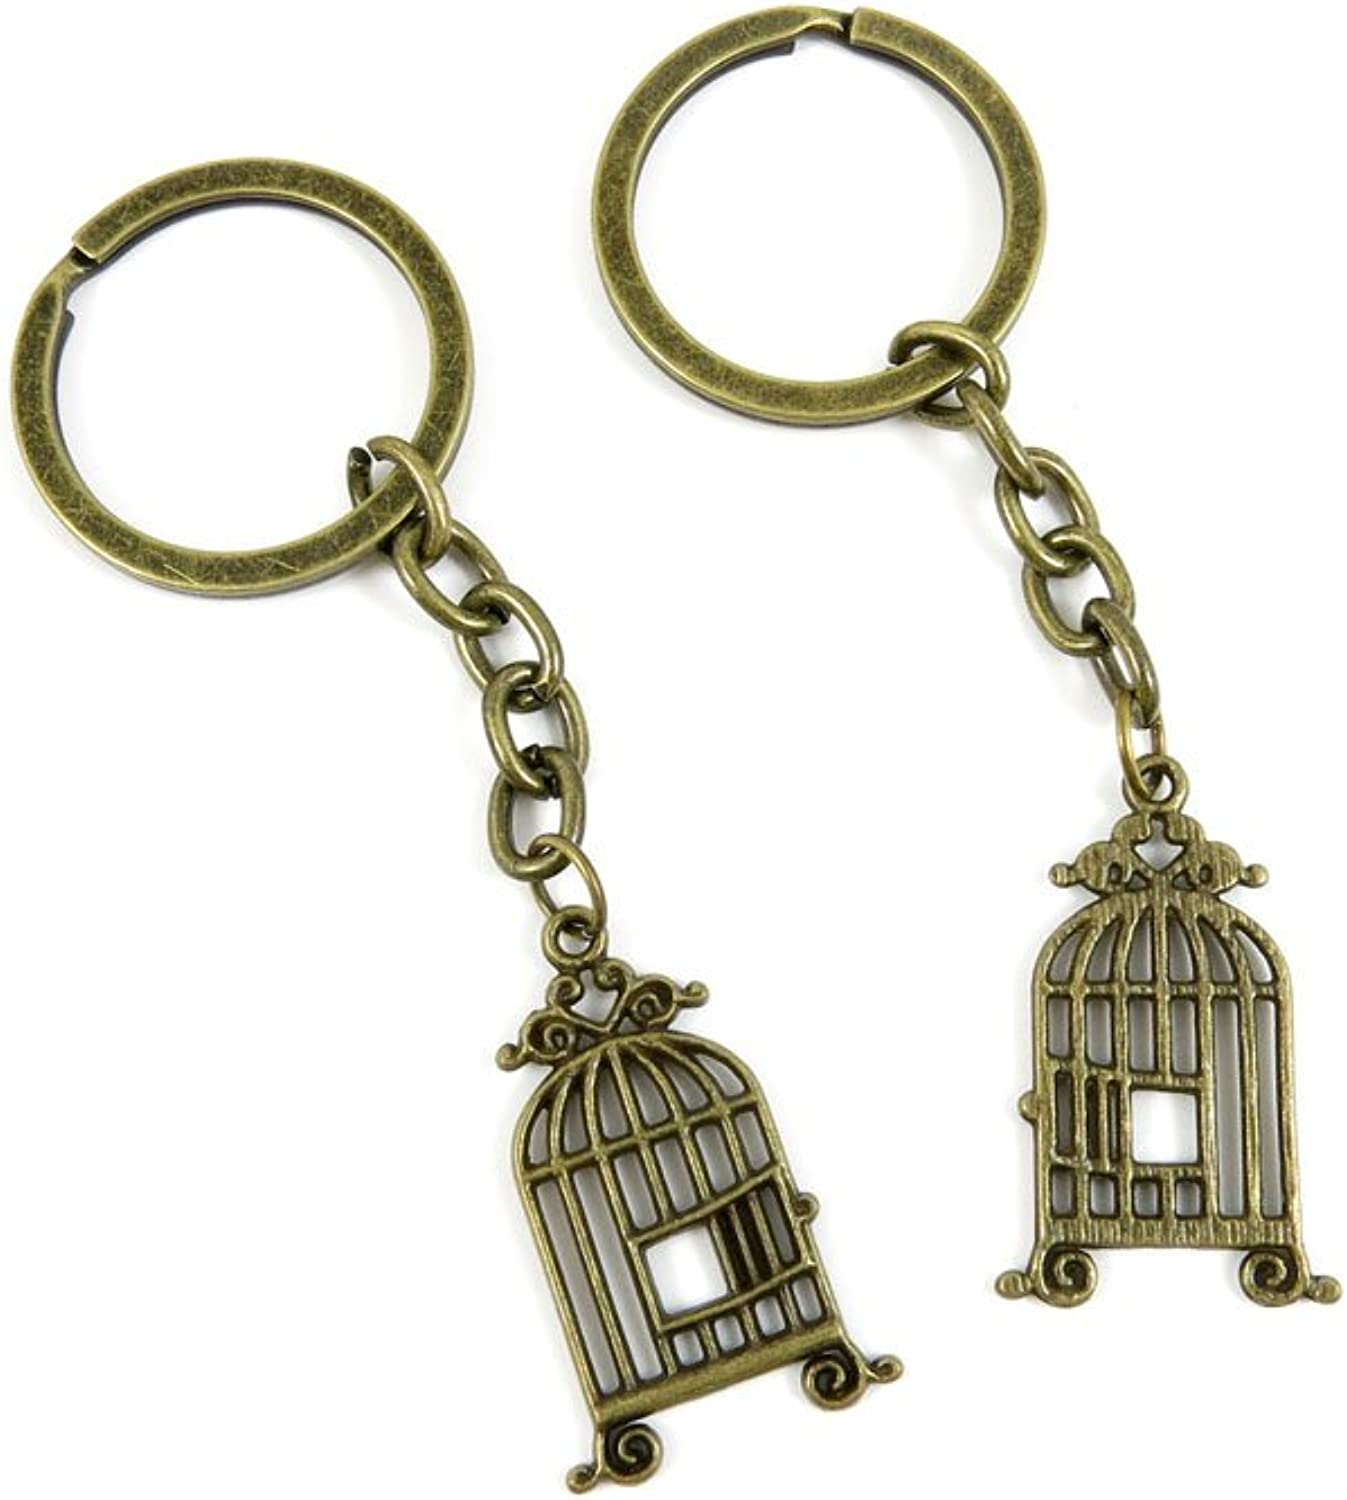 170 Pieces Fashion Jewelry Keyring Keychain Door Car Key Tag Ring Chain Supplier Supply Wholesale Bulk Lots V3PR2 Bird Cage Birdcage